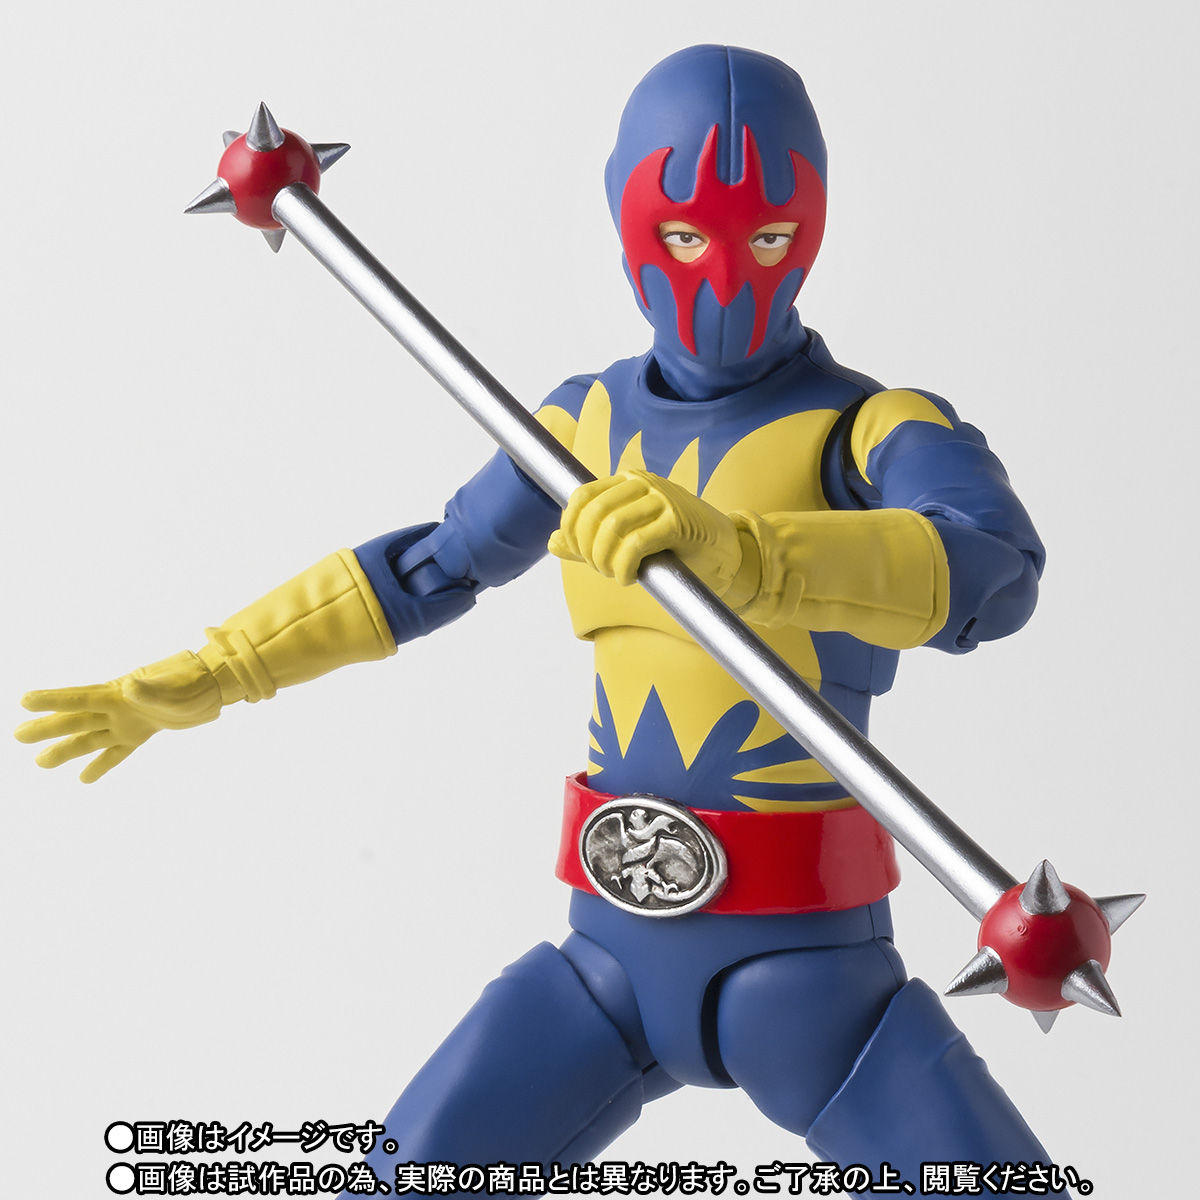 S.H.Figuarts - Gel Shocker Combatman (Limited Pre-order)